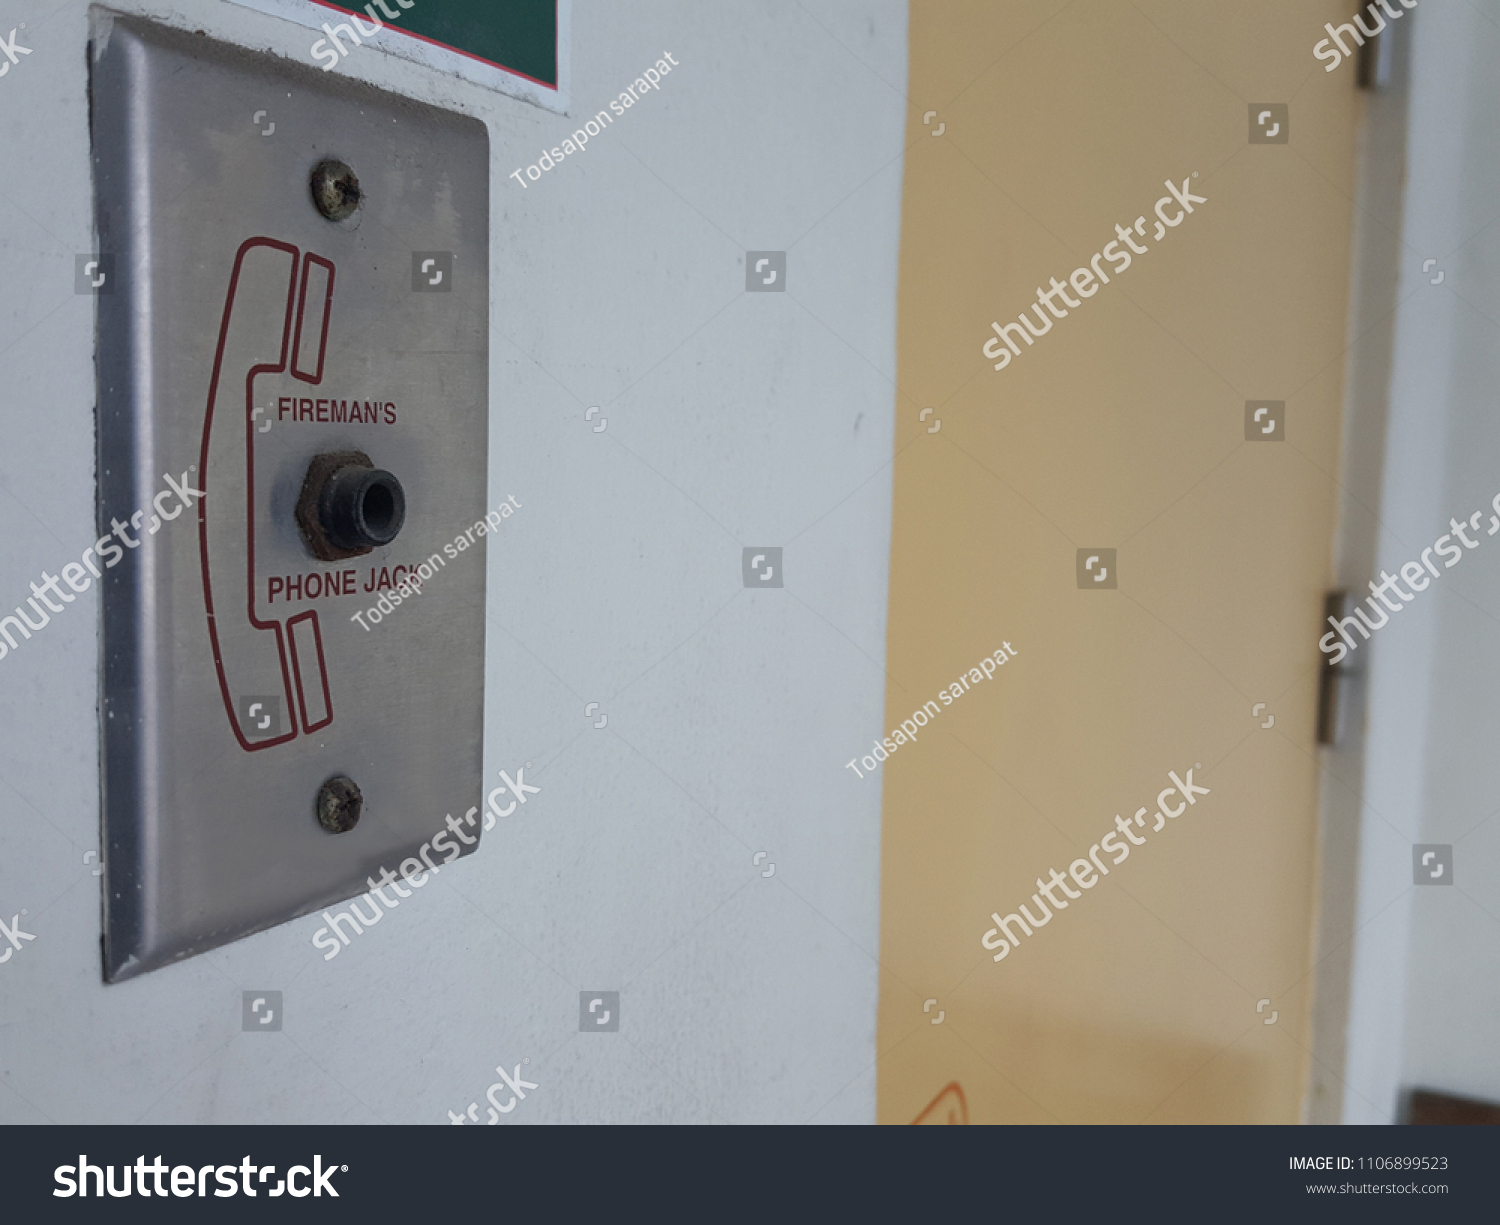 hight resolution of phone jack of fire alarm system